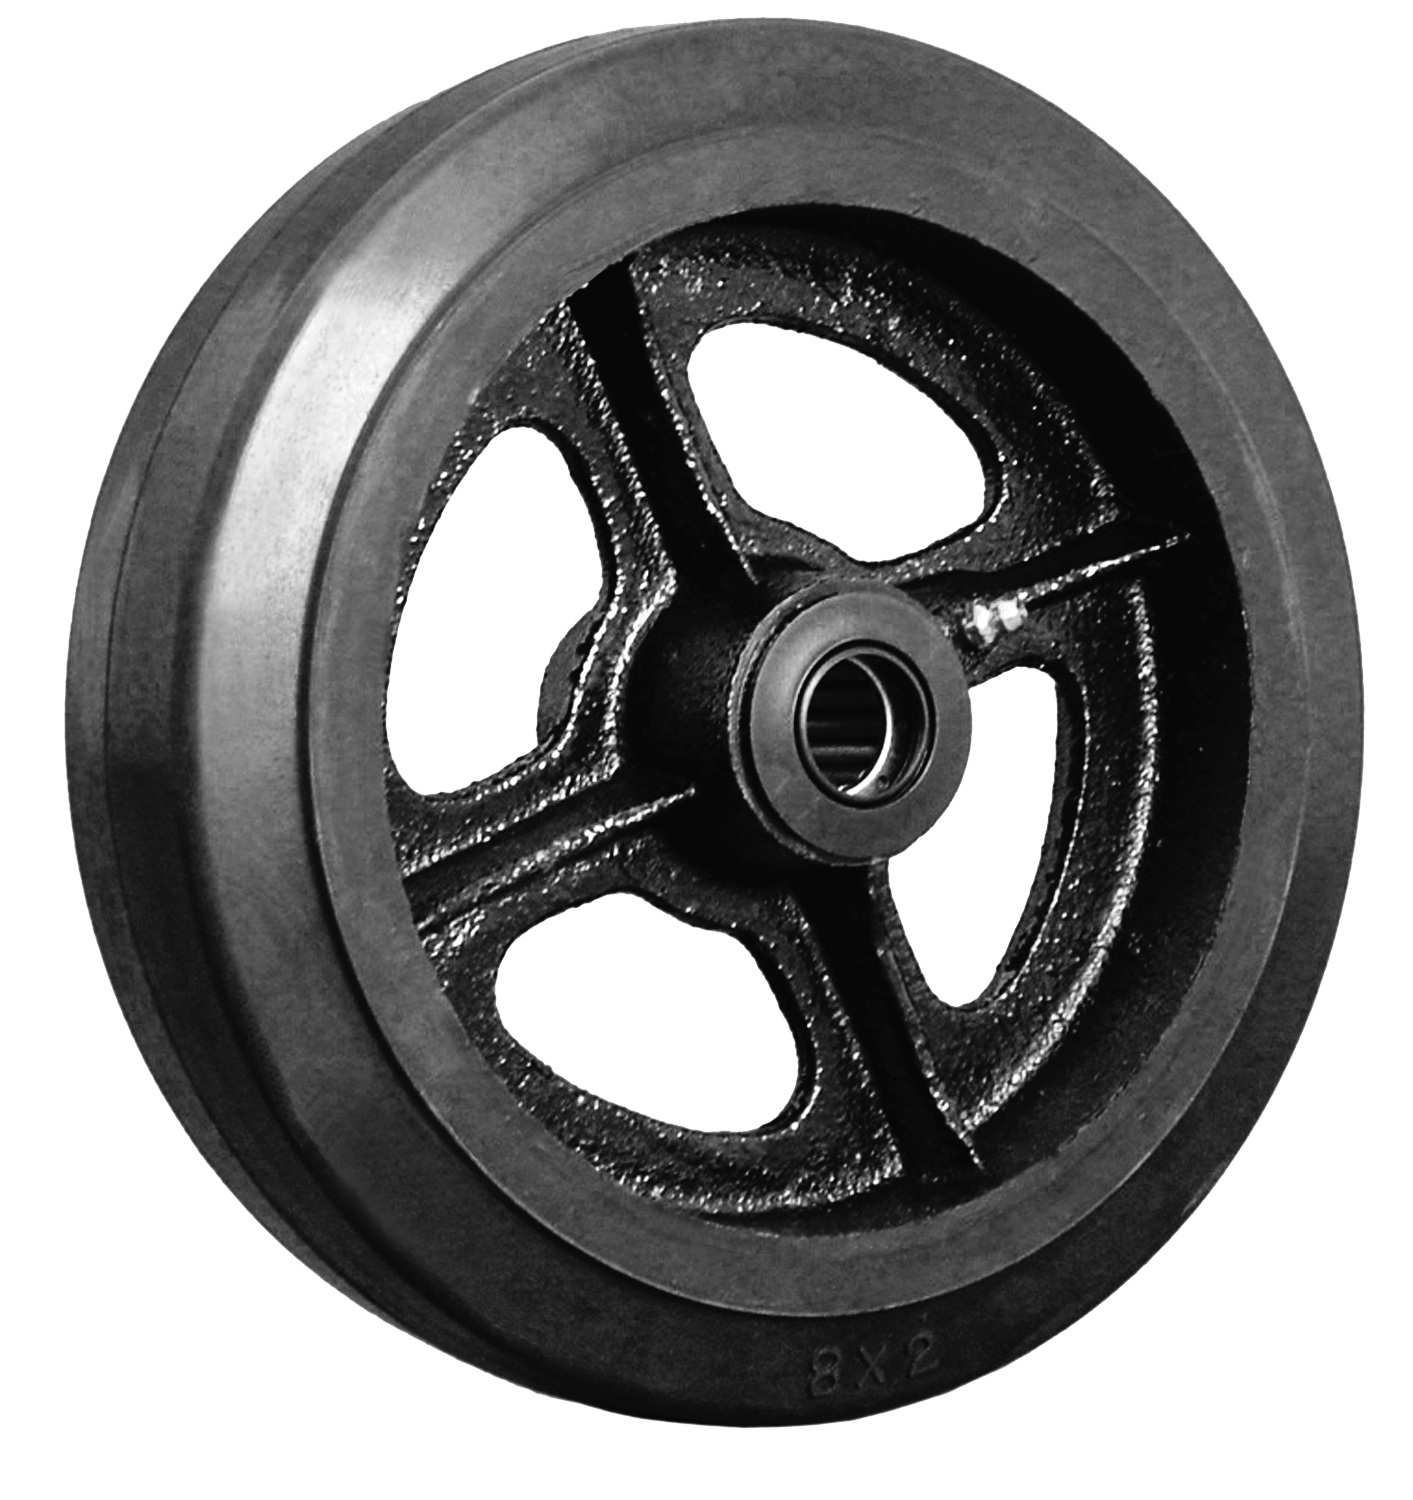 "Wheel; 12"" x 2-1/2""; Rubber on Cast Iron; Roller Brng; 900#; 1"" Bore; 2-3/4"" Hub Length (89796)"